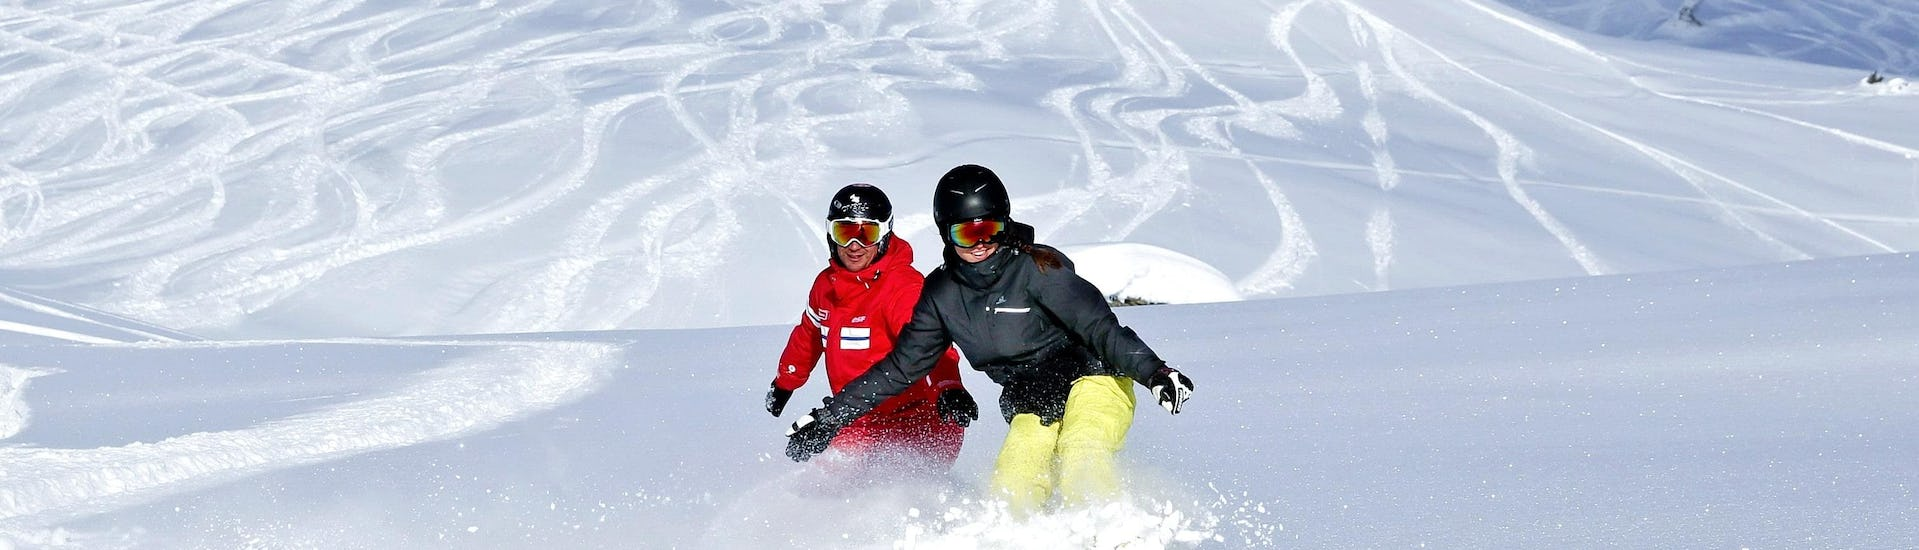 Snowboarding Lessons - High Season - Afternoon